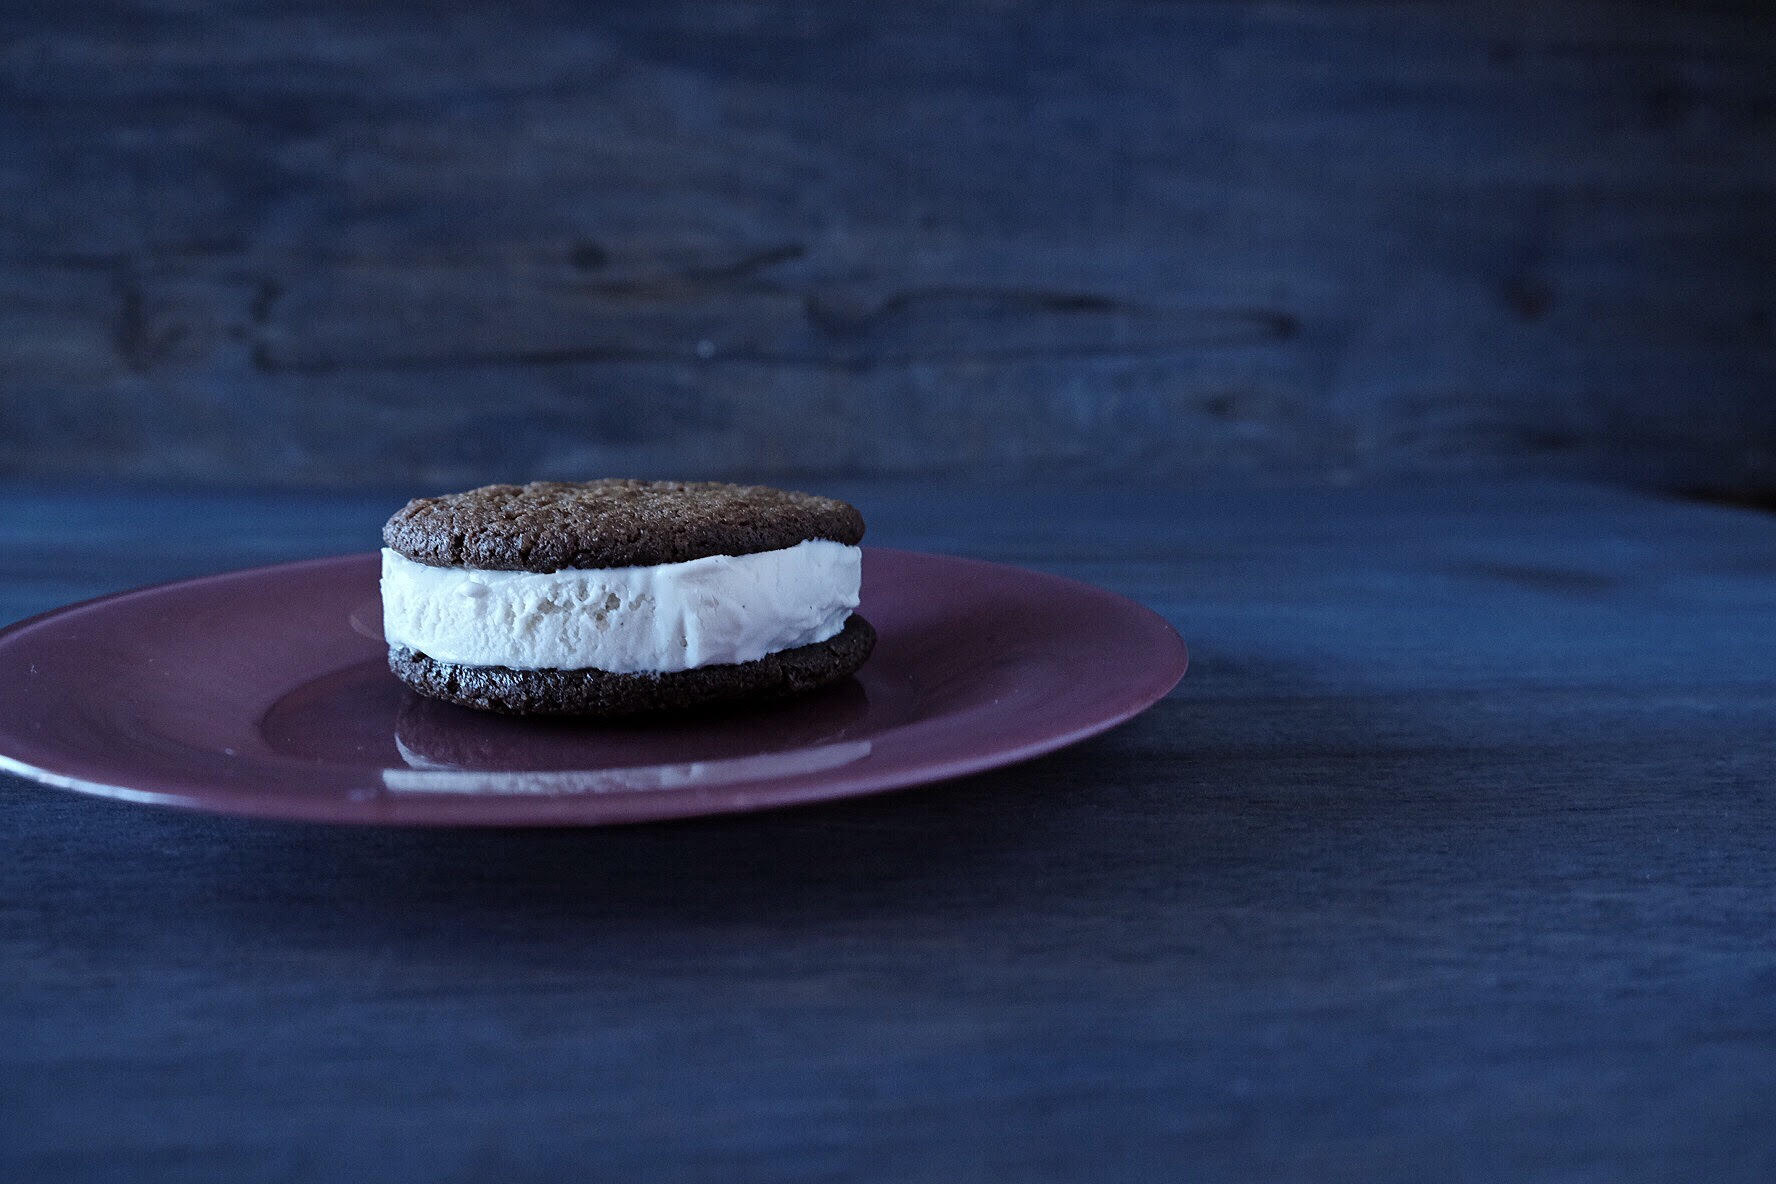 Farmgirl Susan's Molasses Ginger Spice Snap Cookies - Ice Cream Sandwiches!